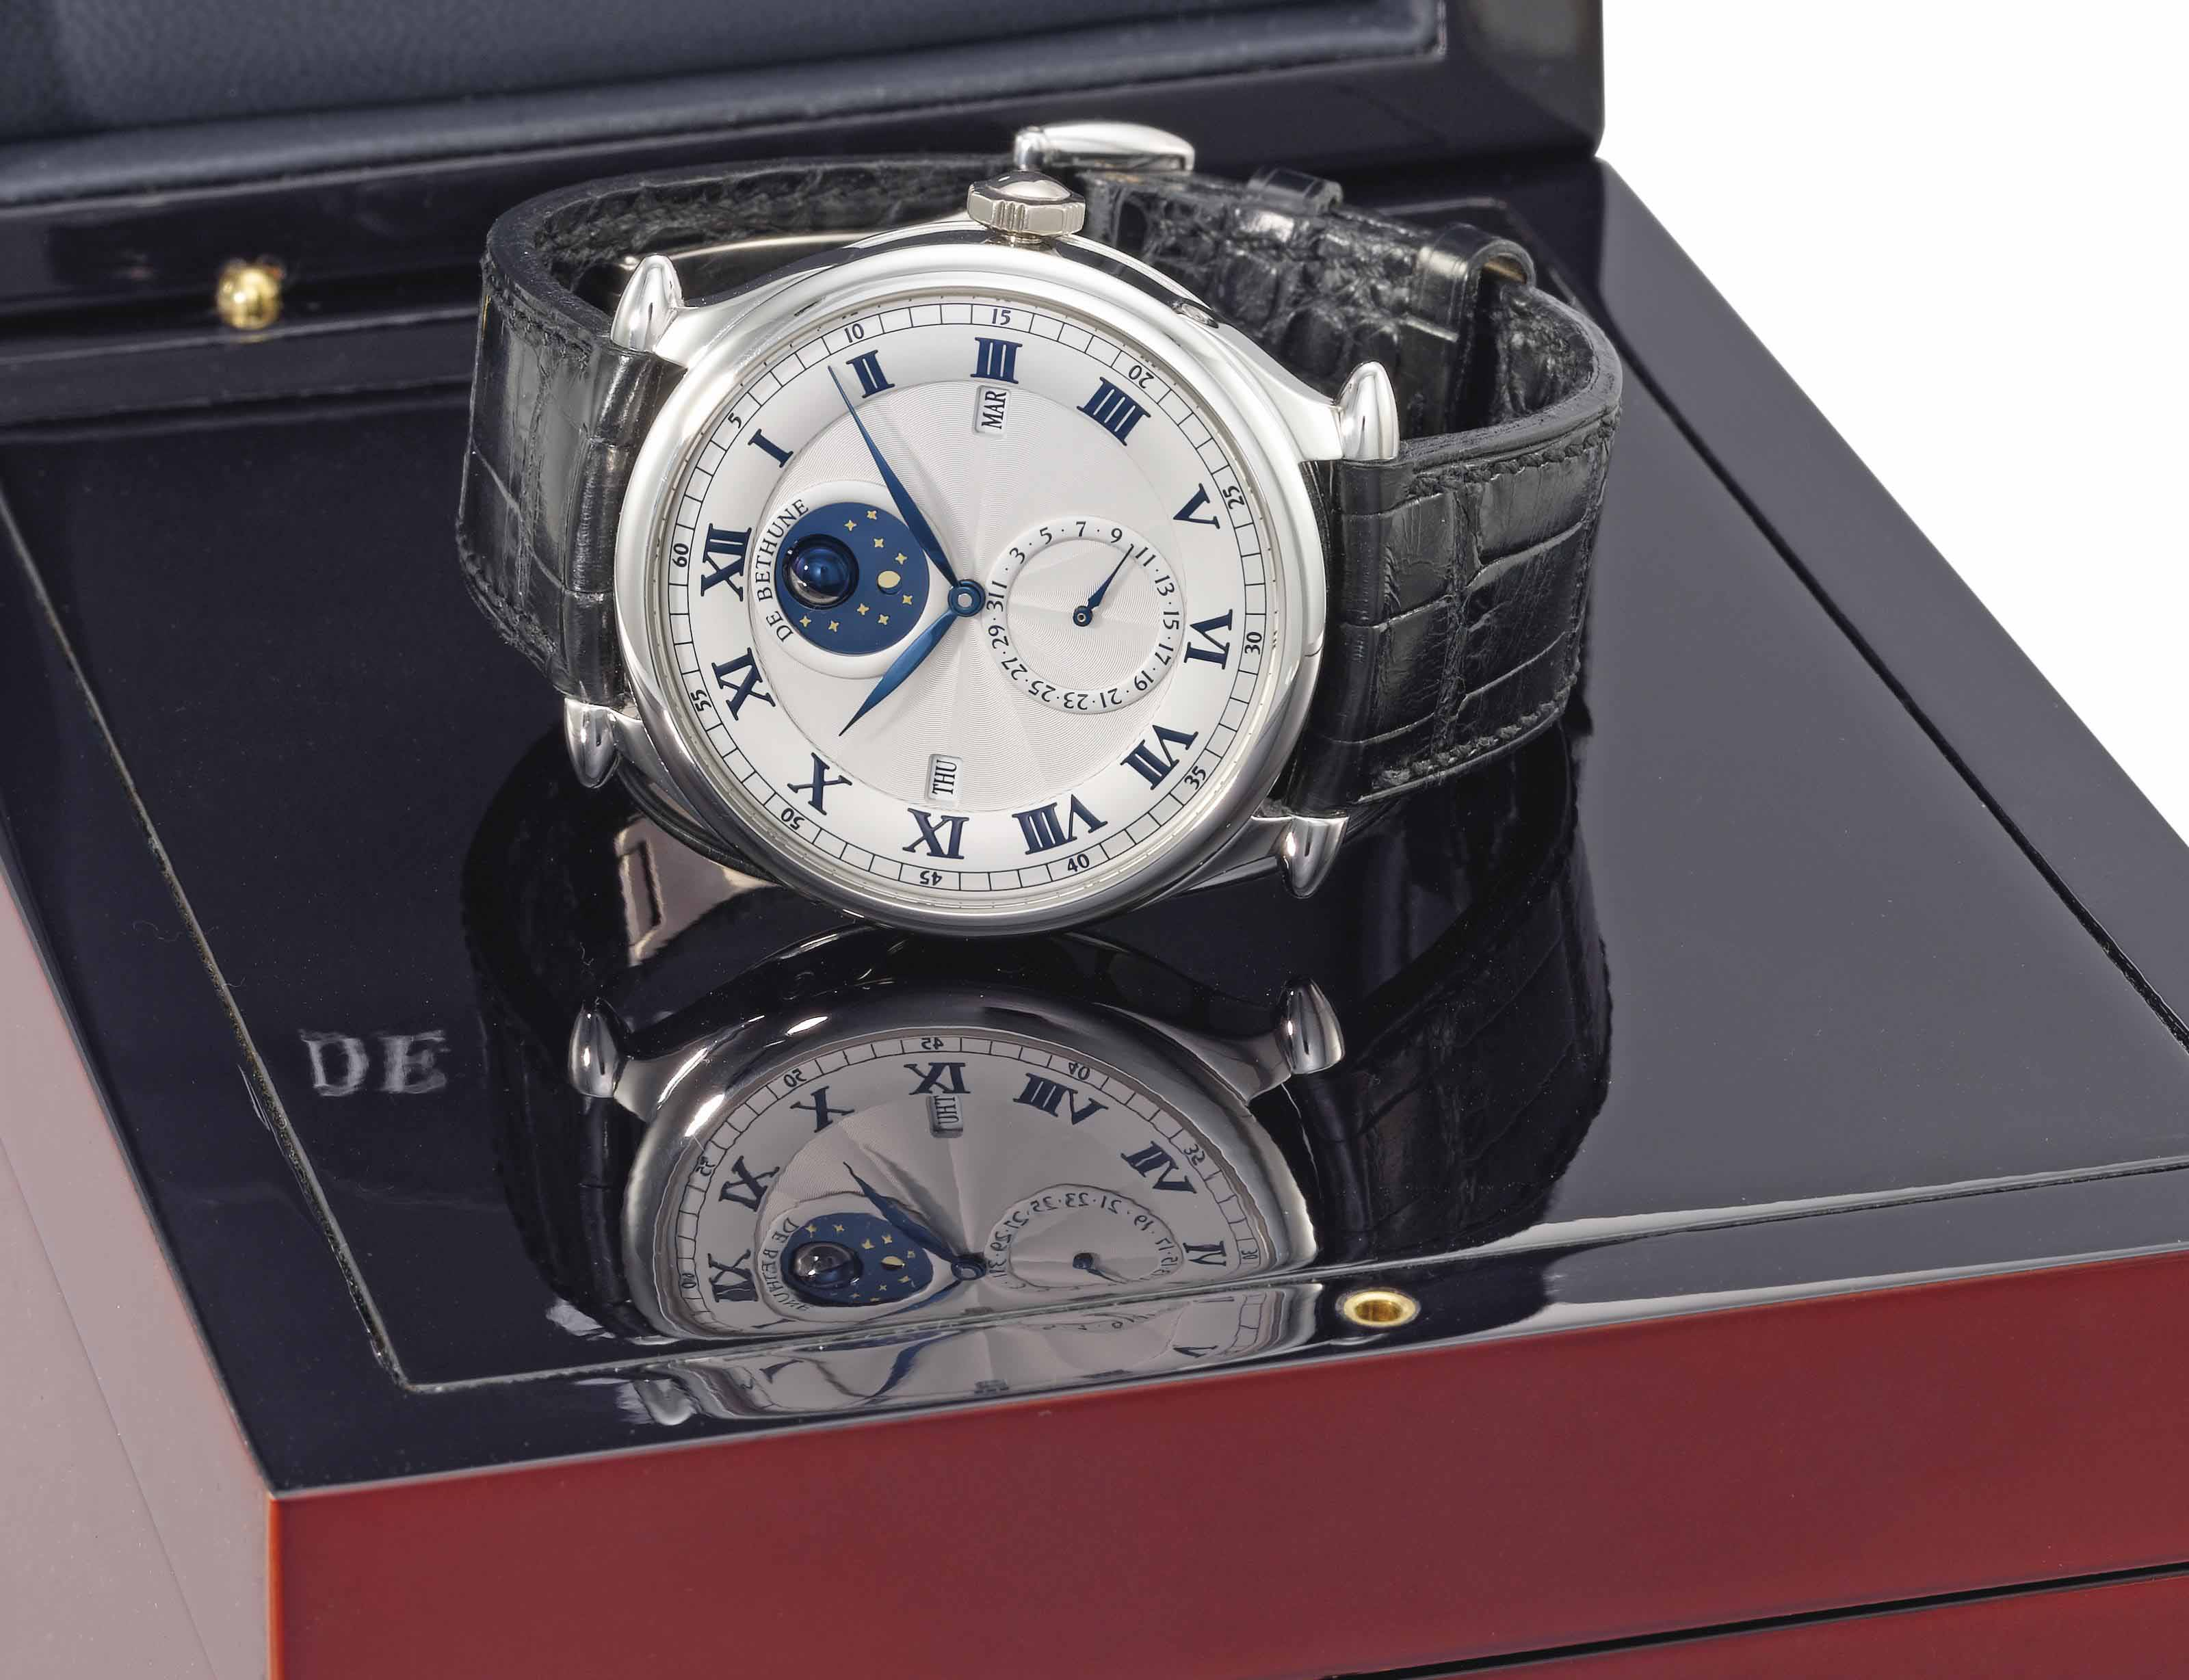 De Bethune. A fine and large platinum perpetual calendar wristwatch with three-dimensional revolving moon phases